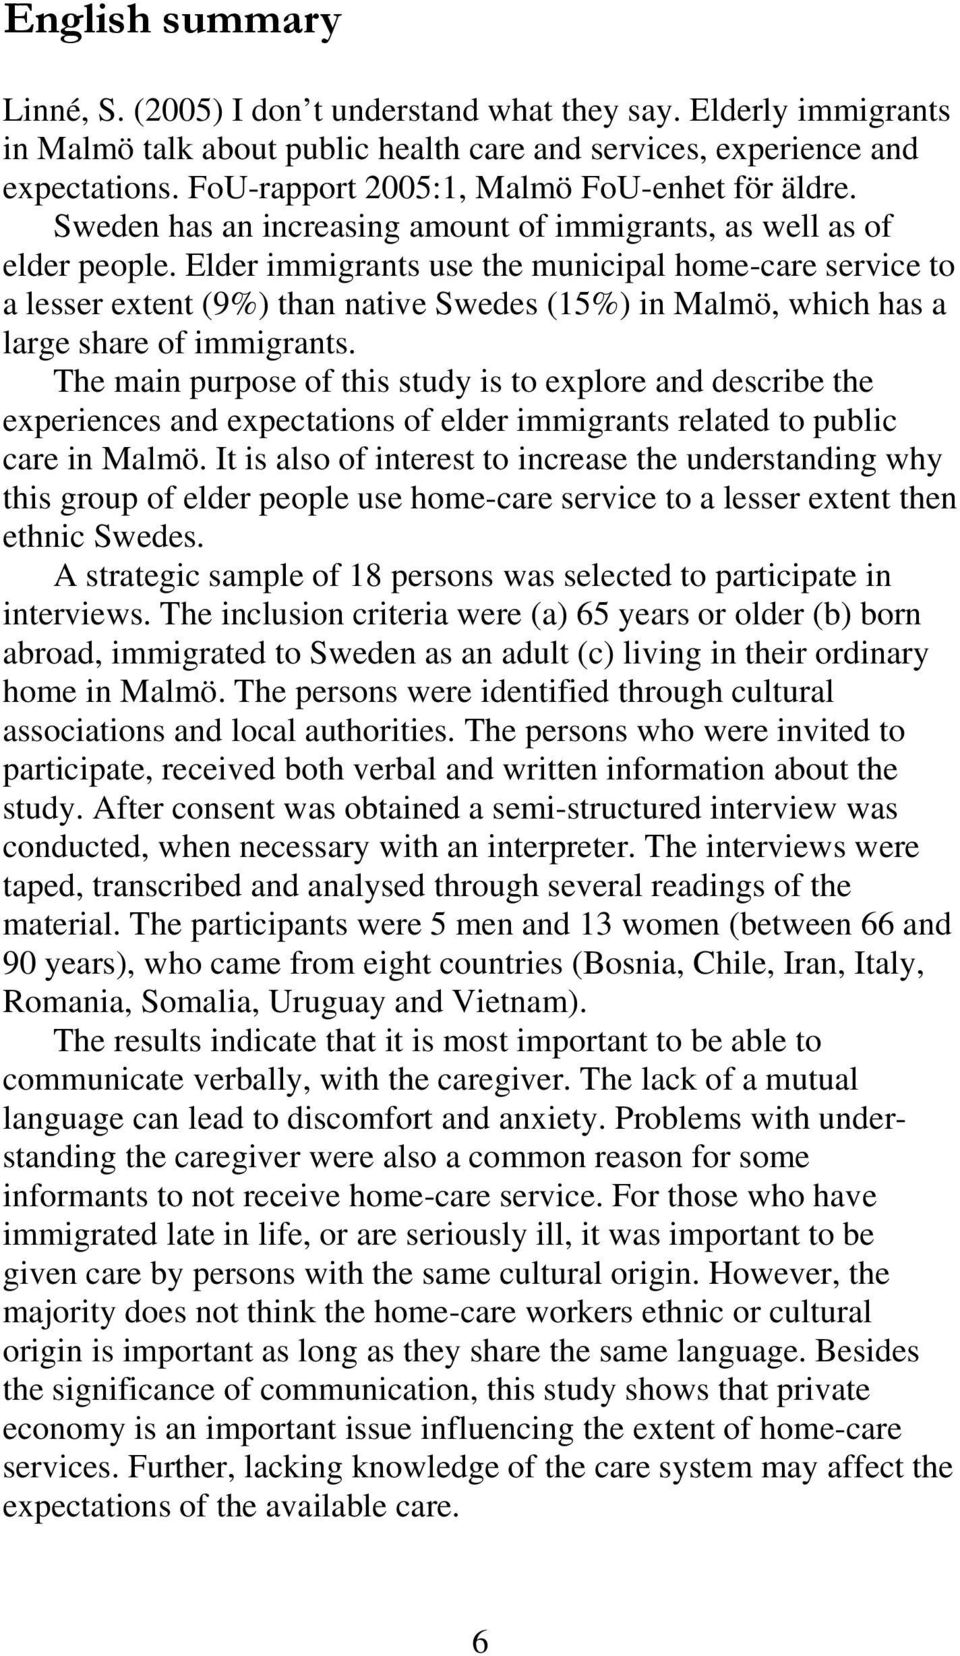 Elder immigrants use the municipal home-care service to a lesser extent (9%) than native Swedes (15%) in Malmö, which has a large share of immigrants.